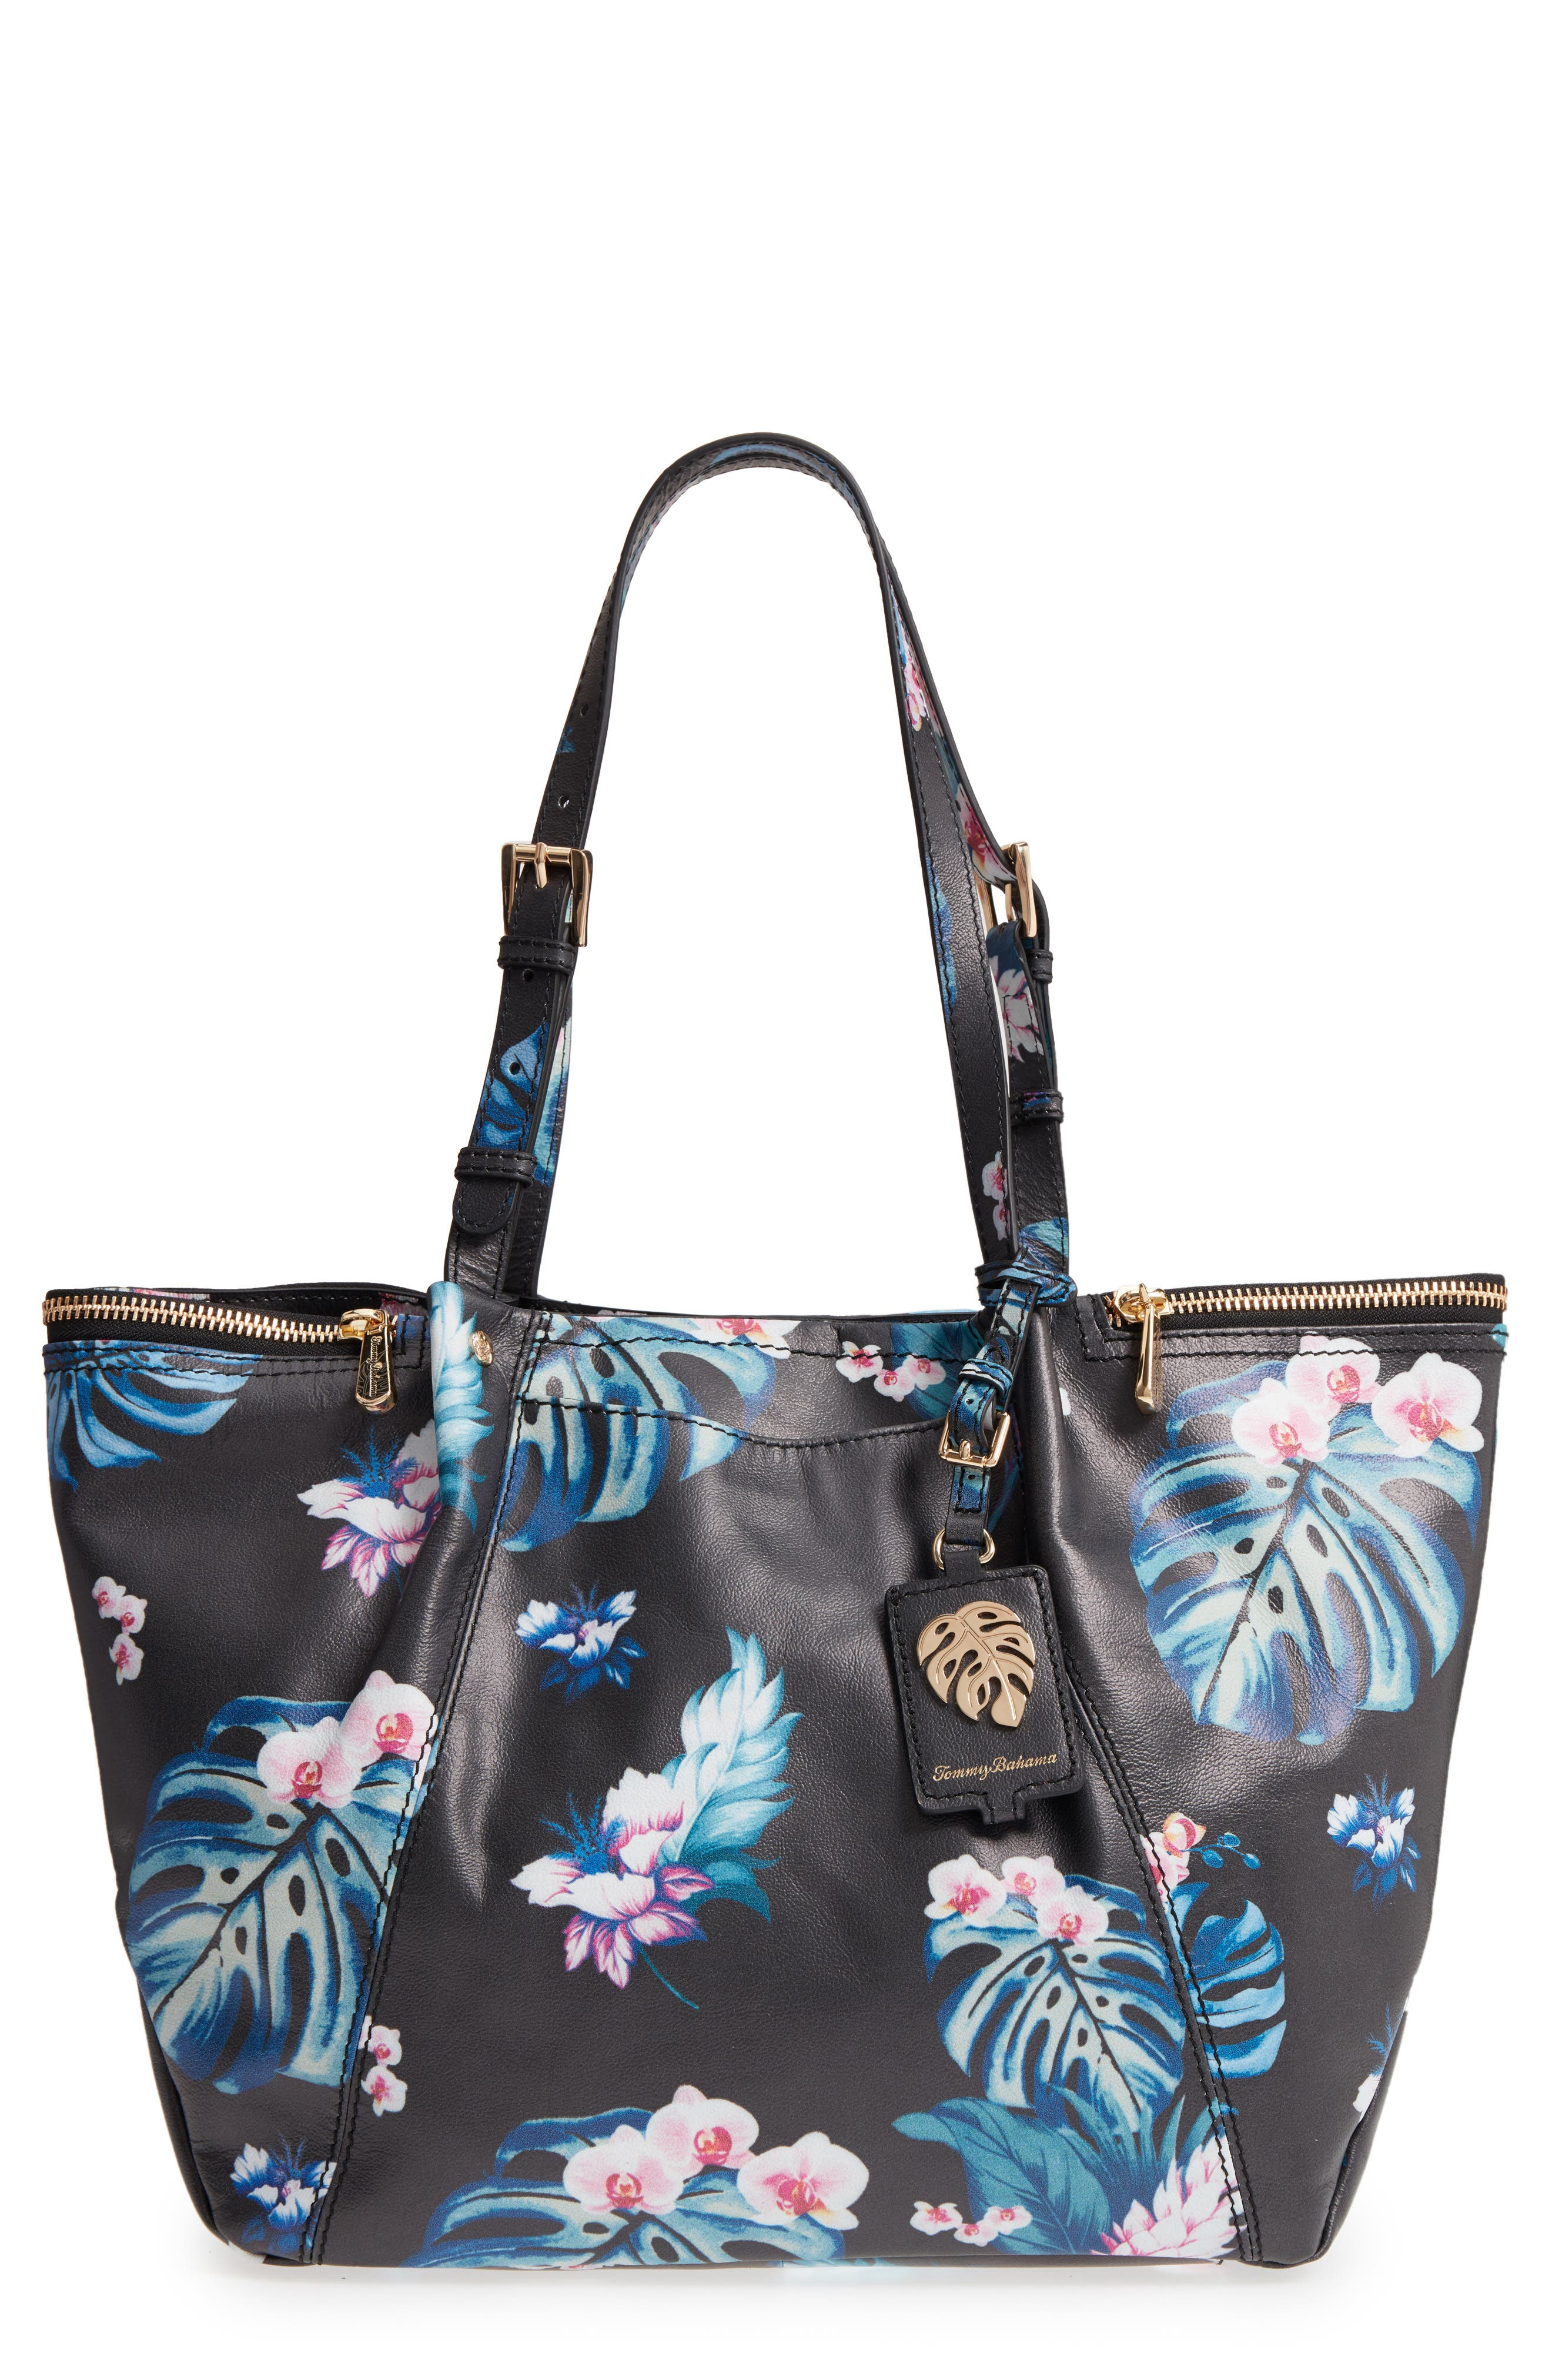 St. Lucia Printed Leather Tote,                         Main,                         color, 001